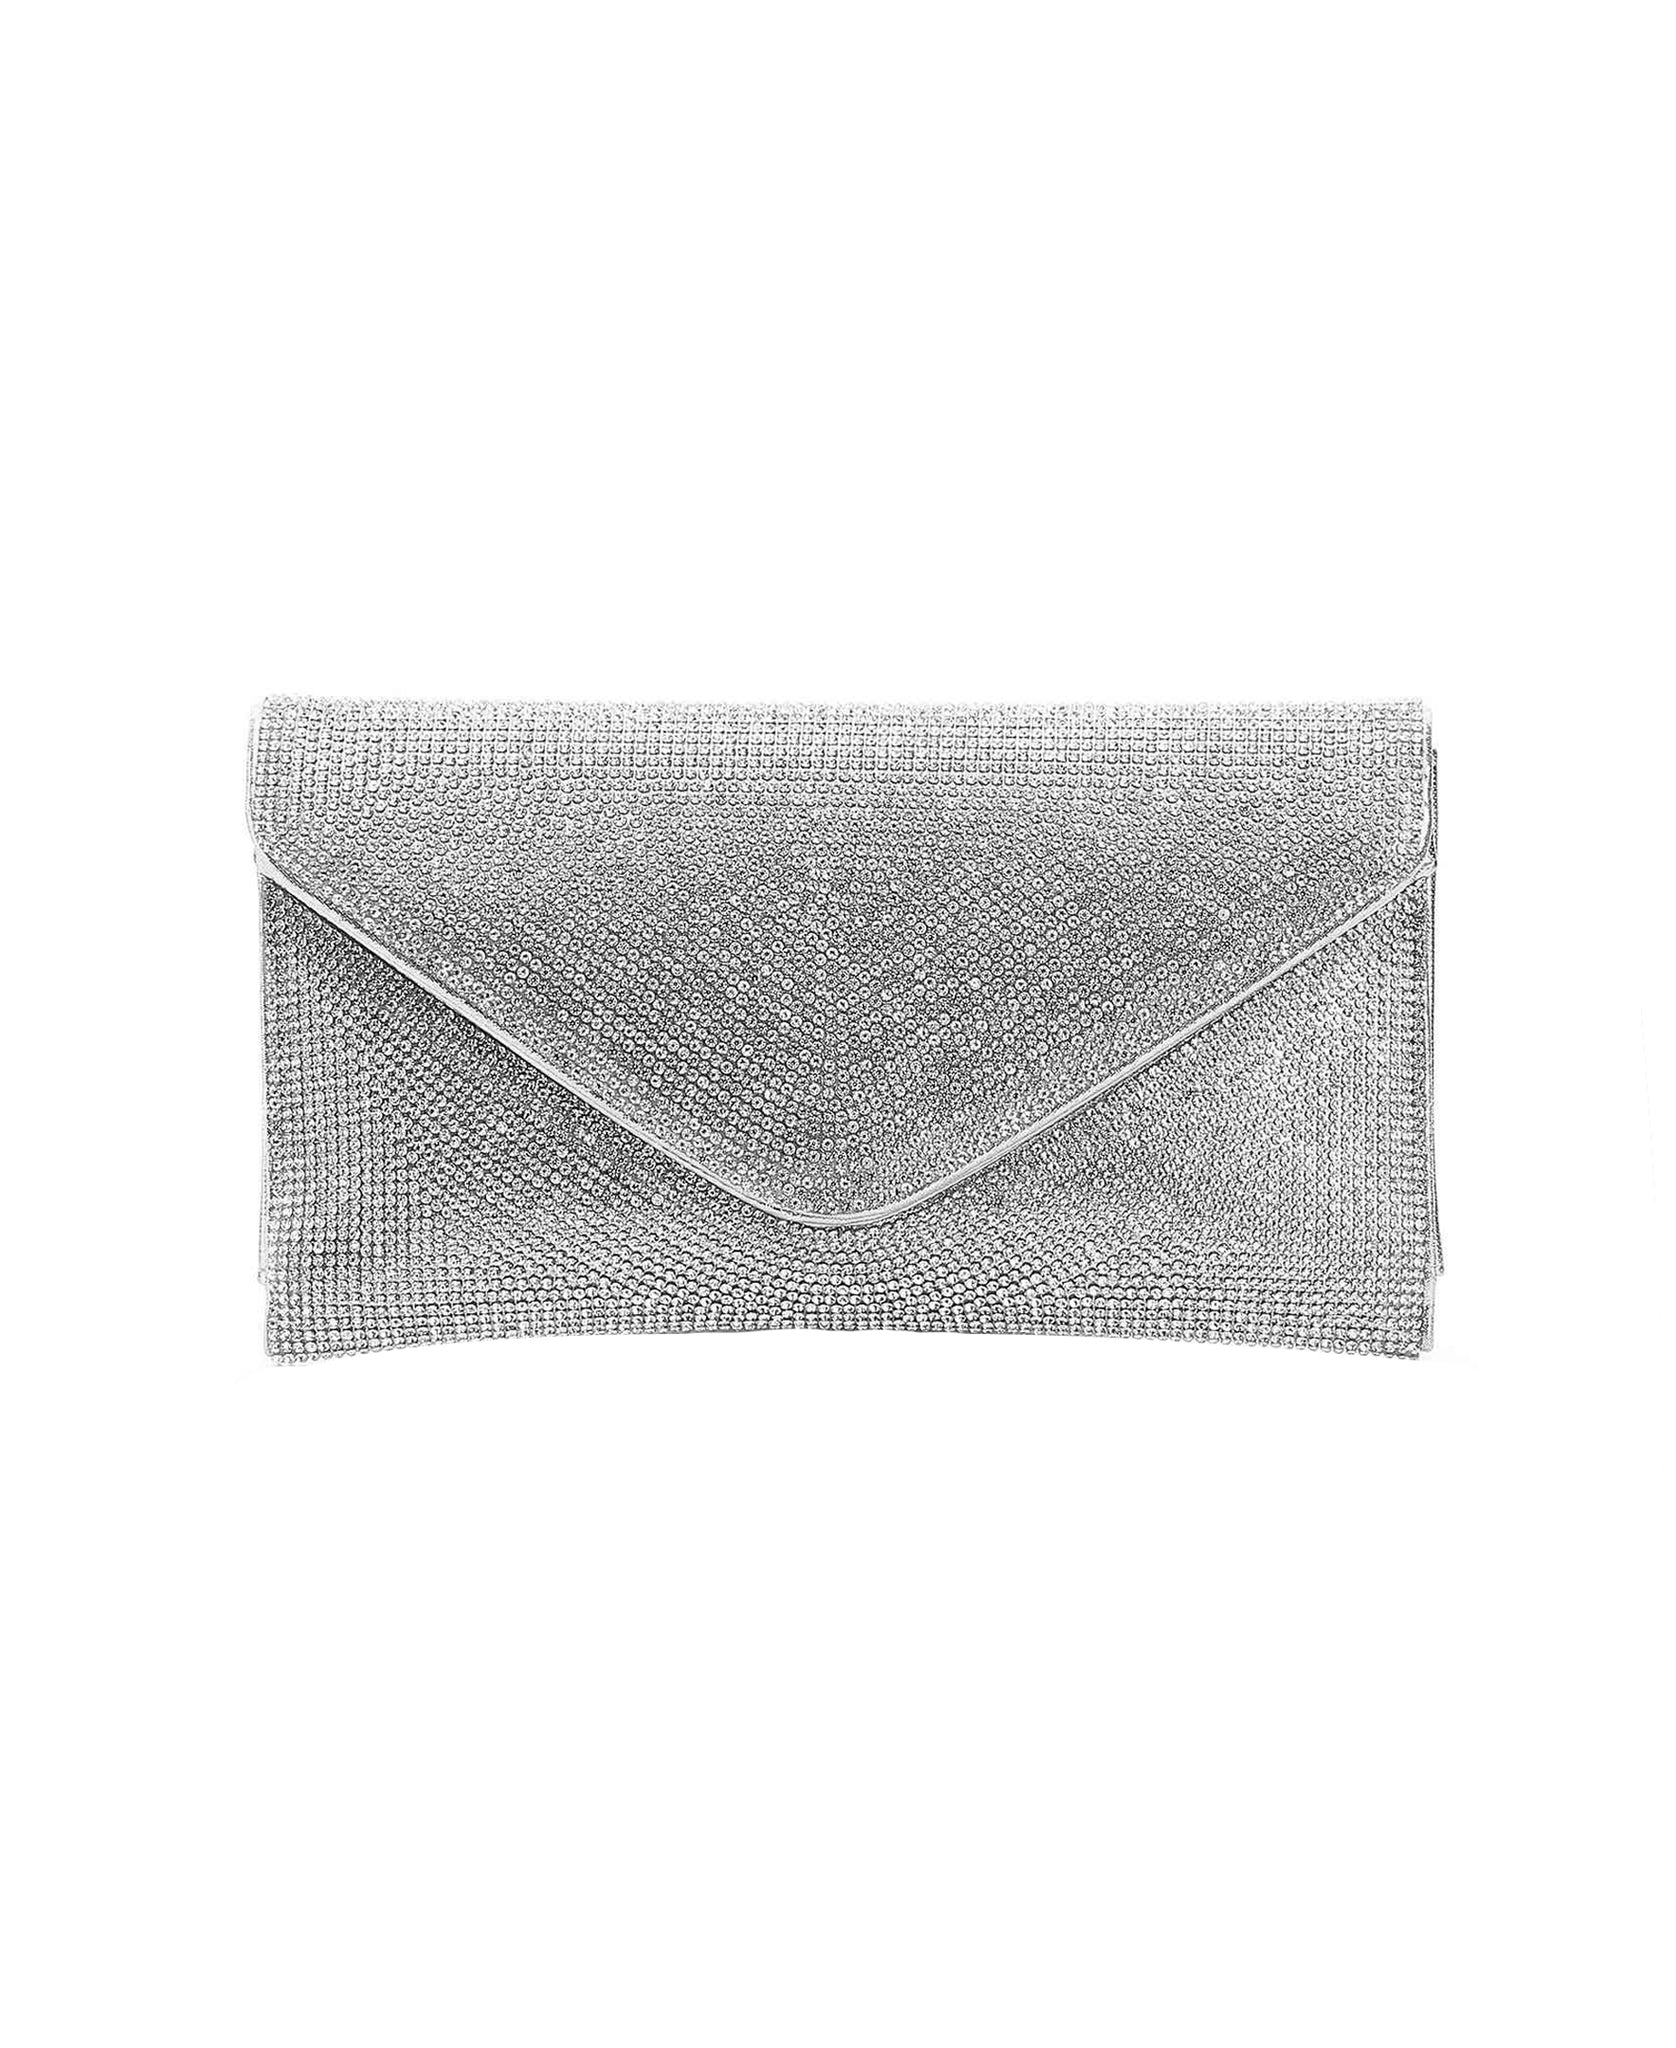 Celine Crystal Envelope Clutch